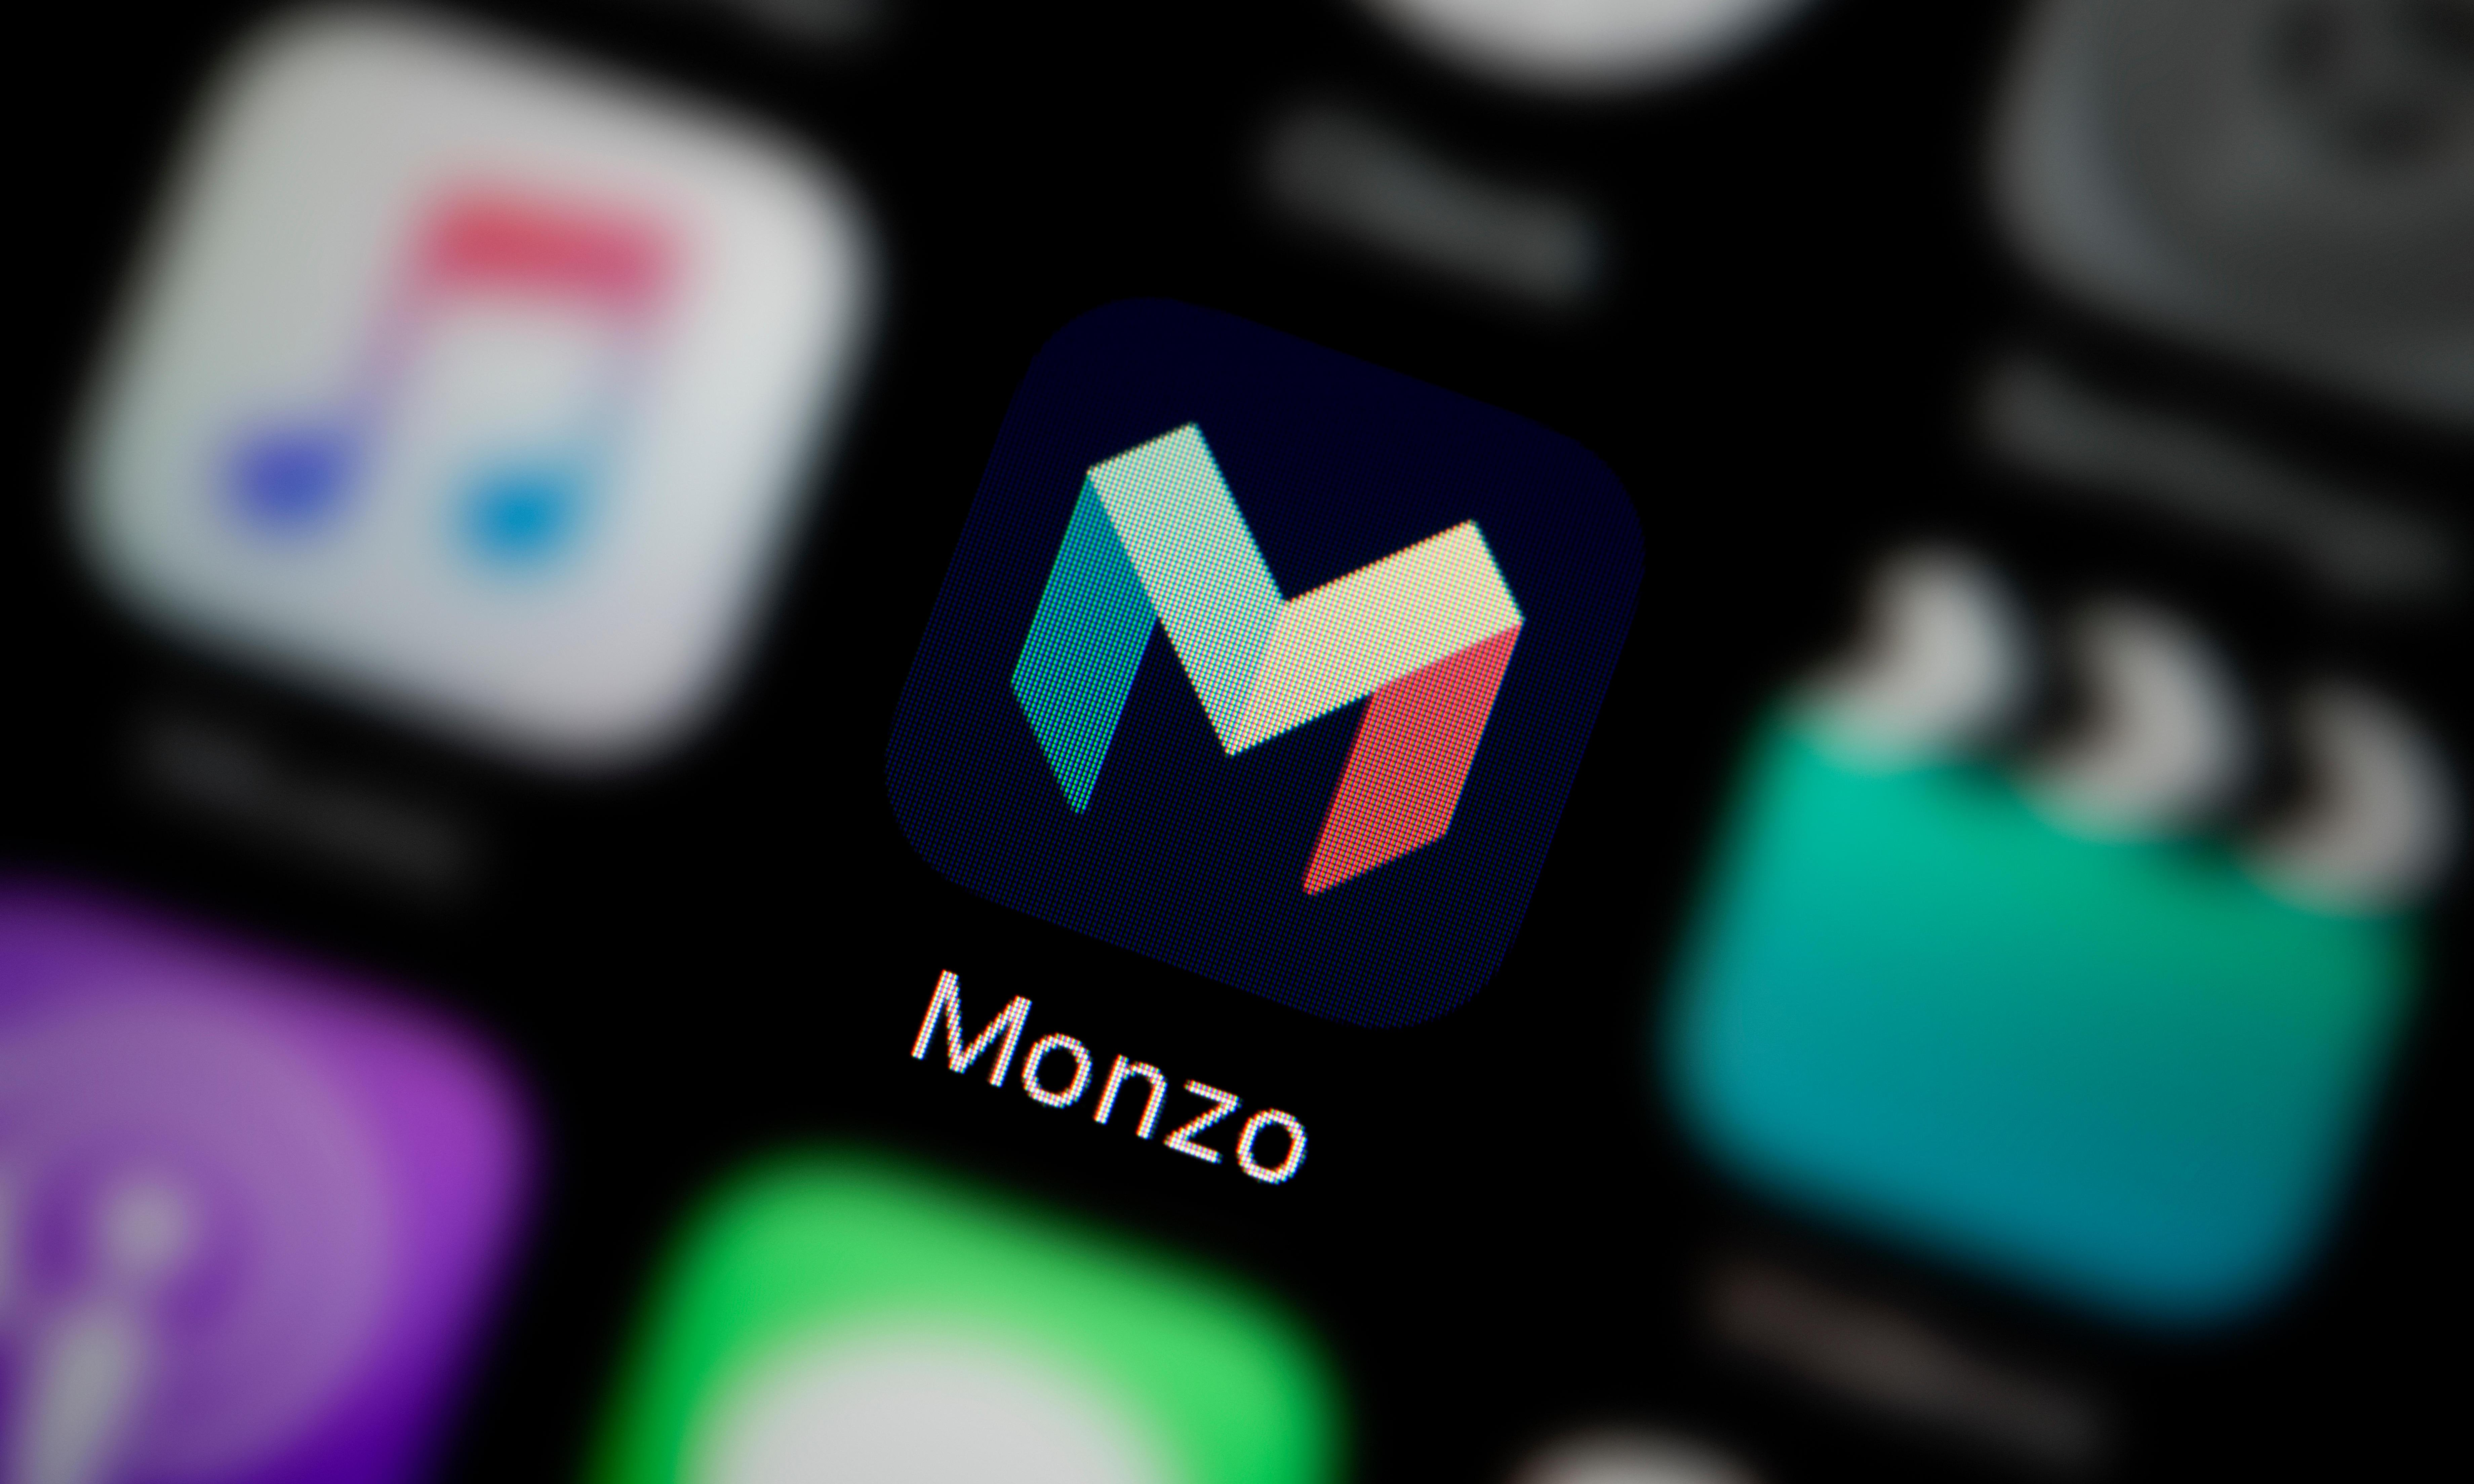 Monzo bank 'freezing accounts for no apparent reason'